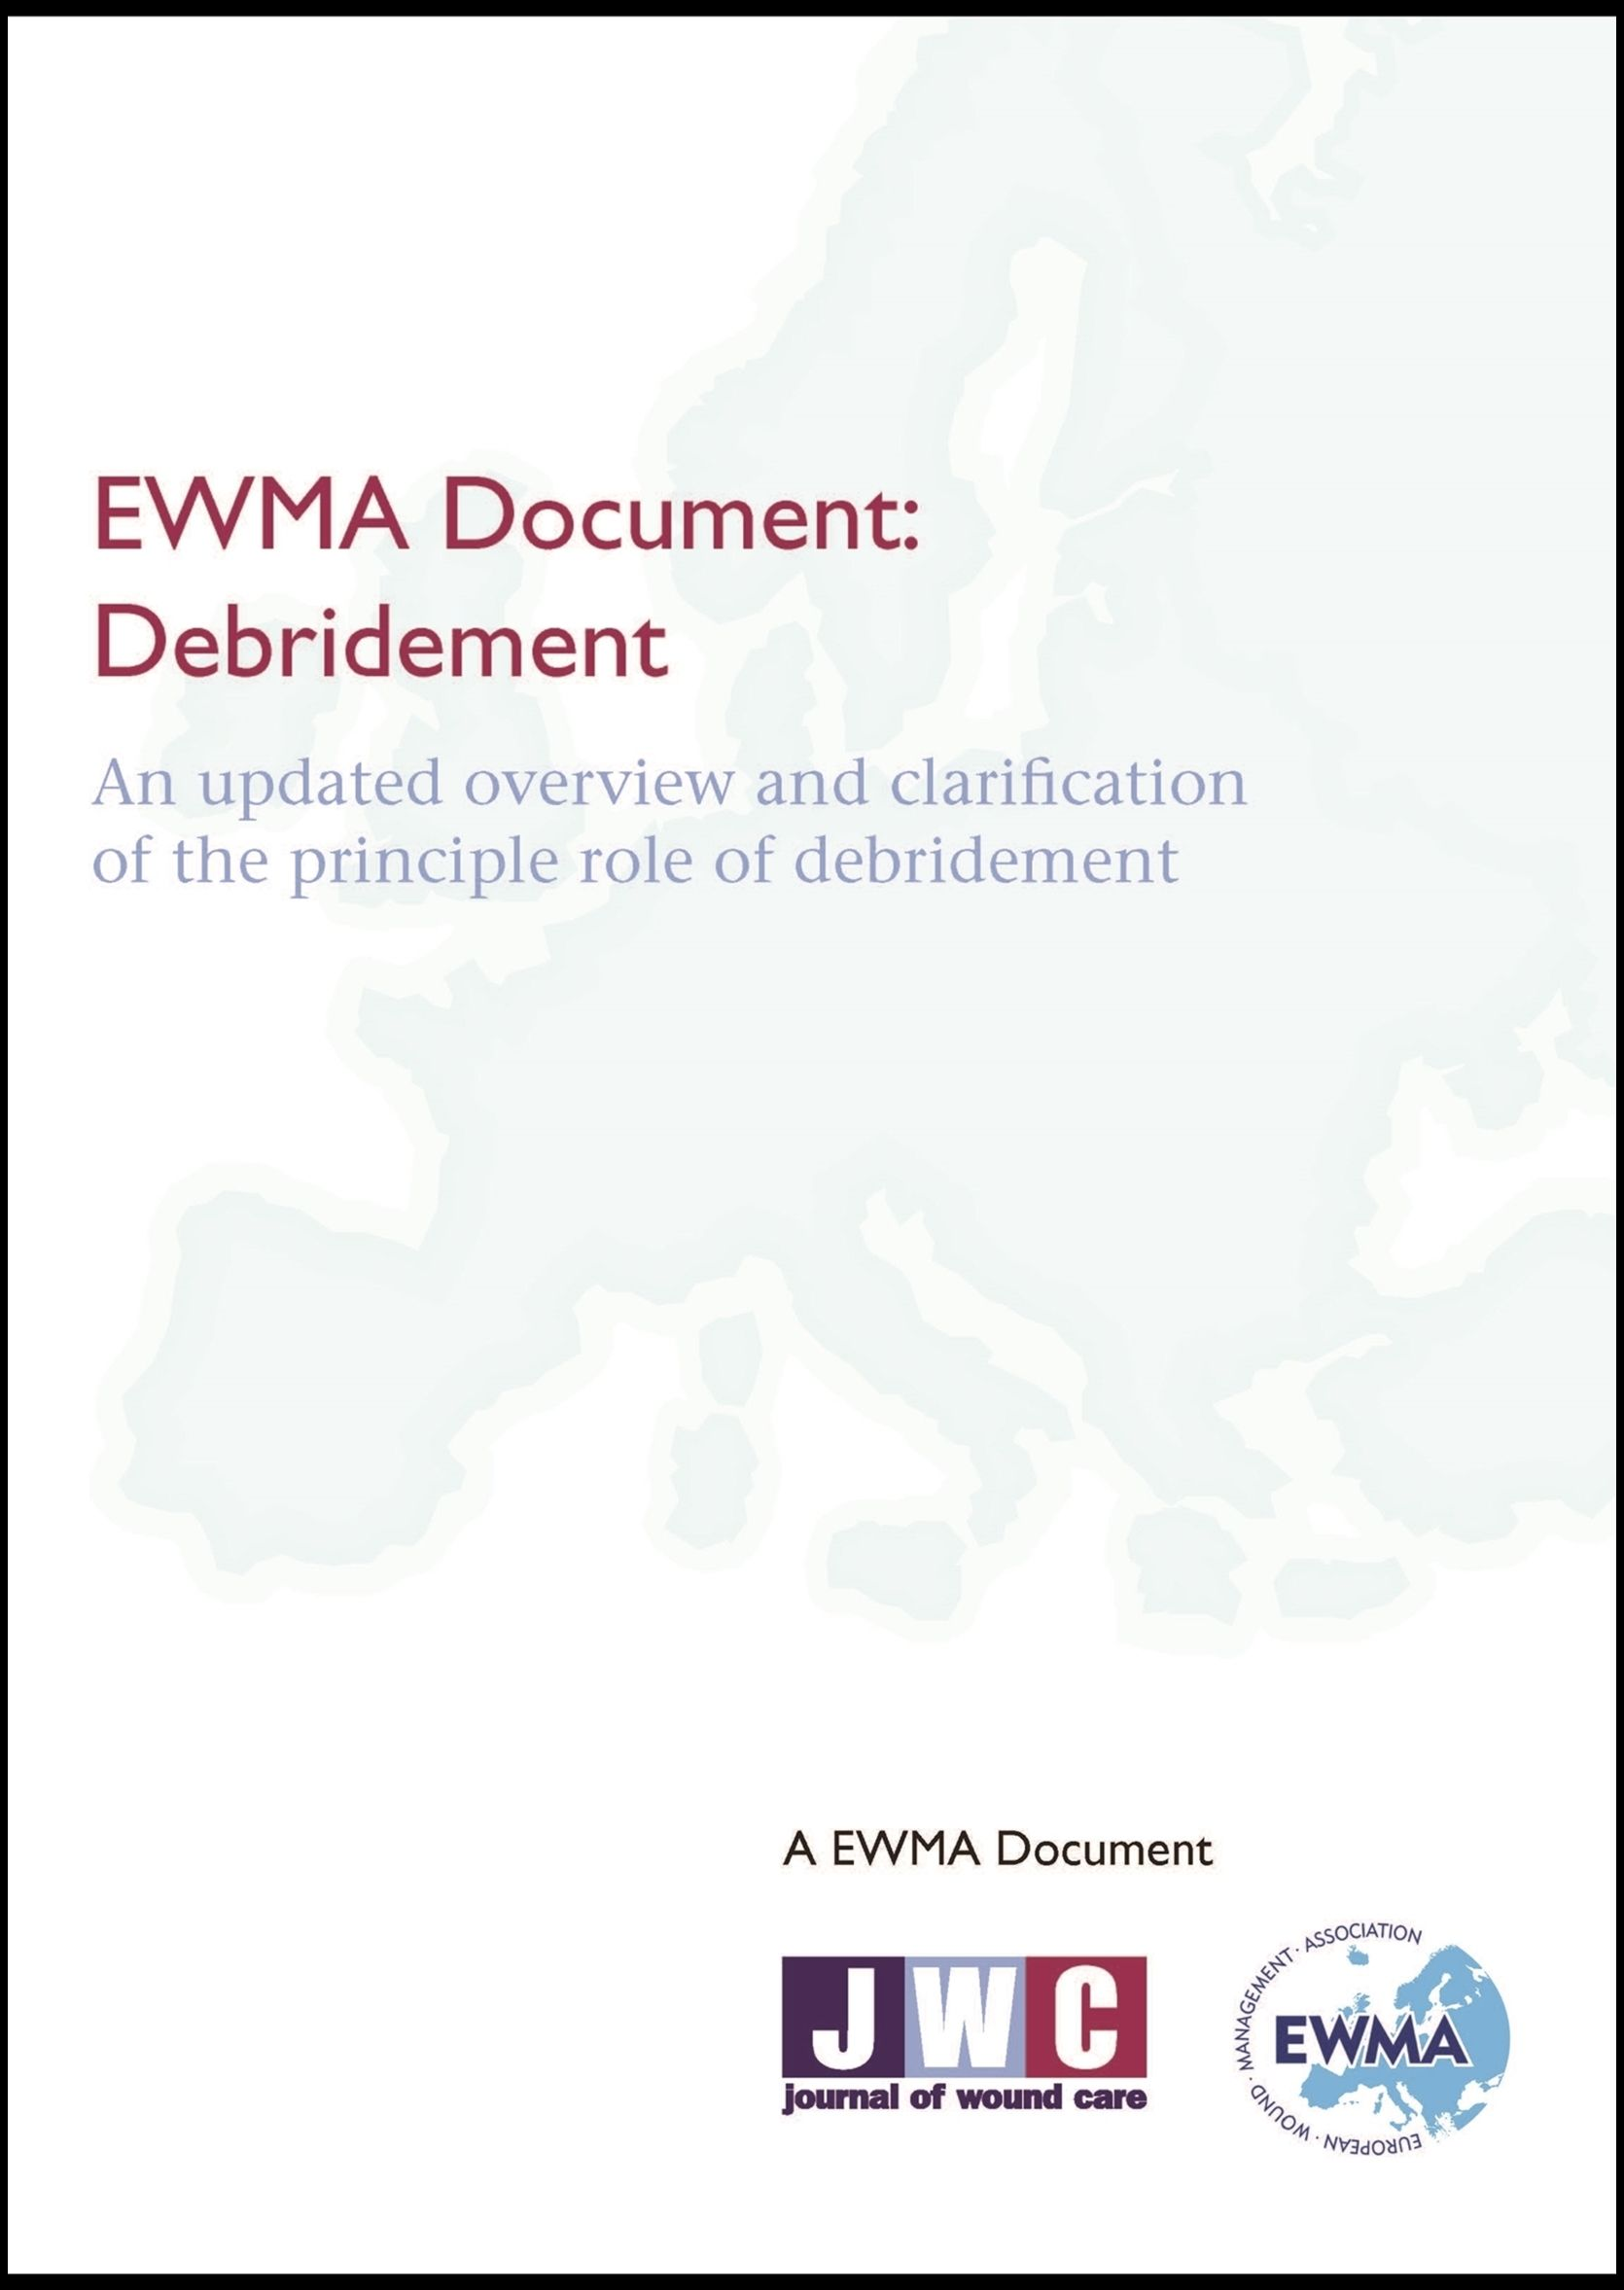 EWMA Document - Debridement